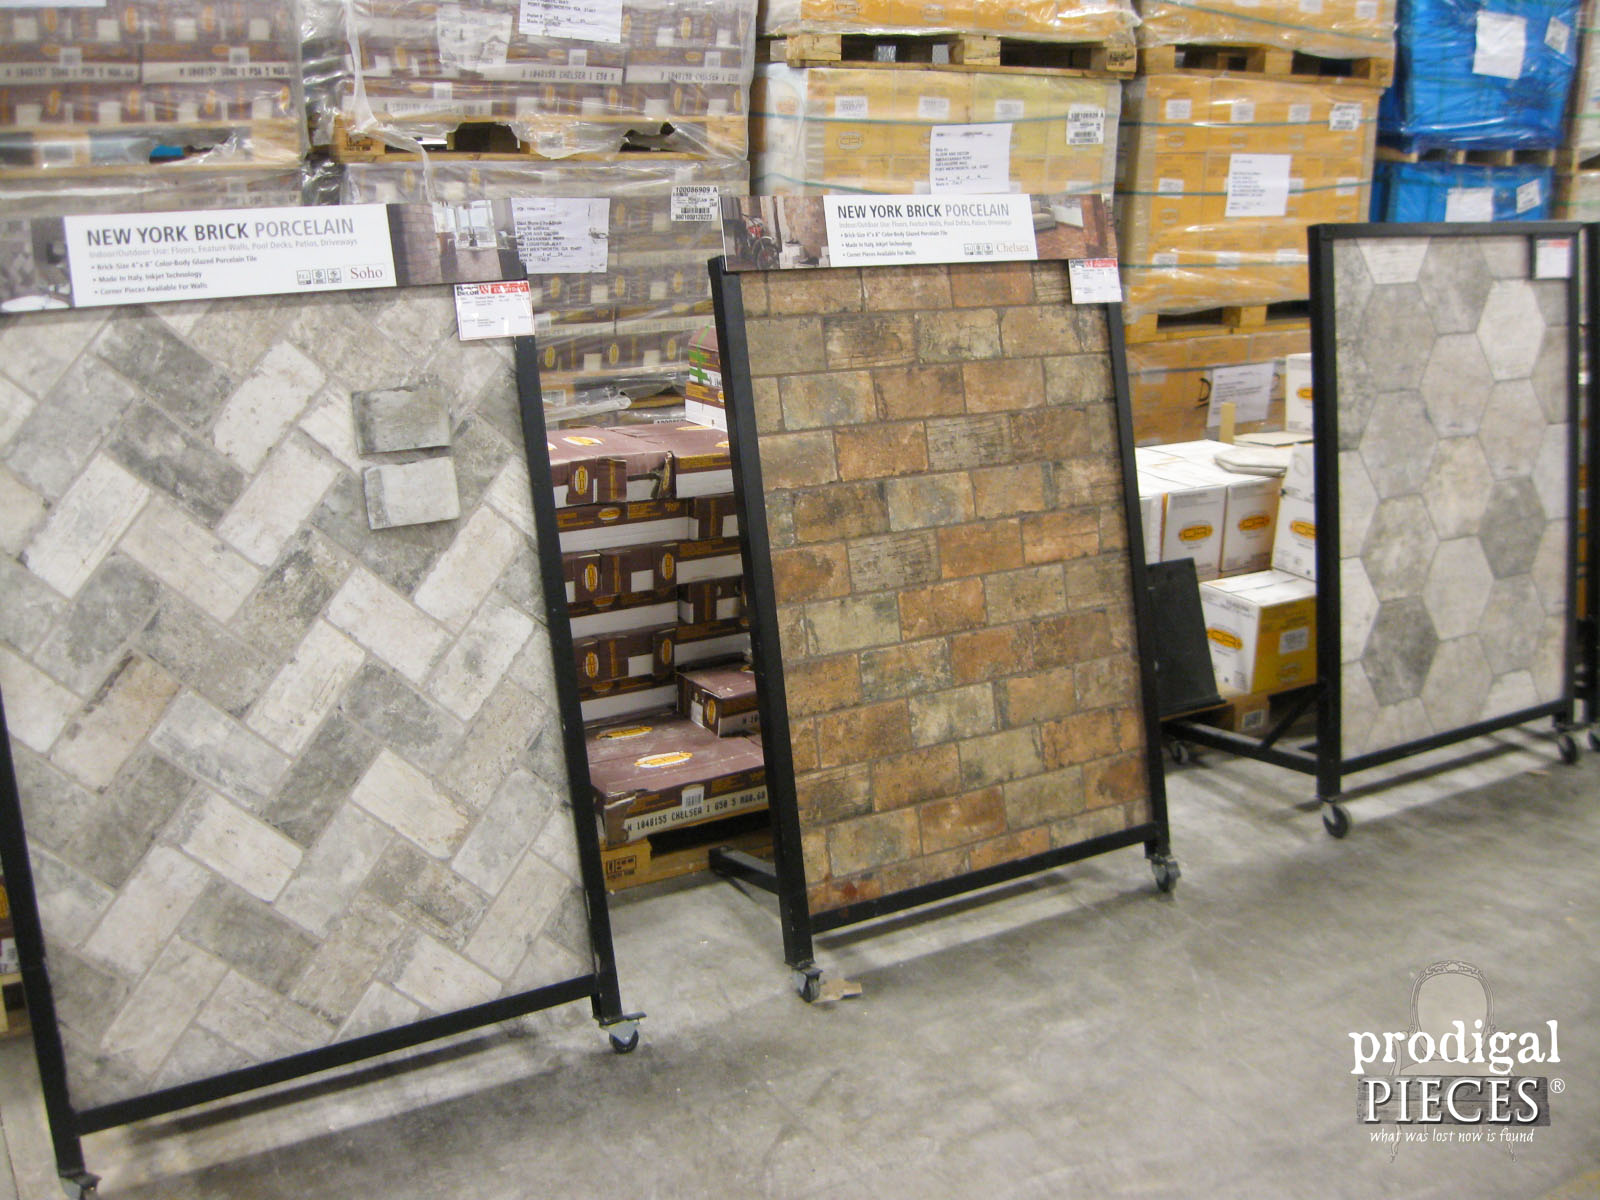 Choosing kitchen flooring our remodel begins prodigal pieces brick look alike porcelain tile by floor decor prodigal pieces prodigalpieces dailygadgetfo Choice Image